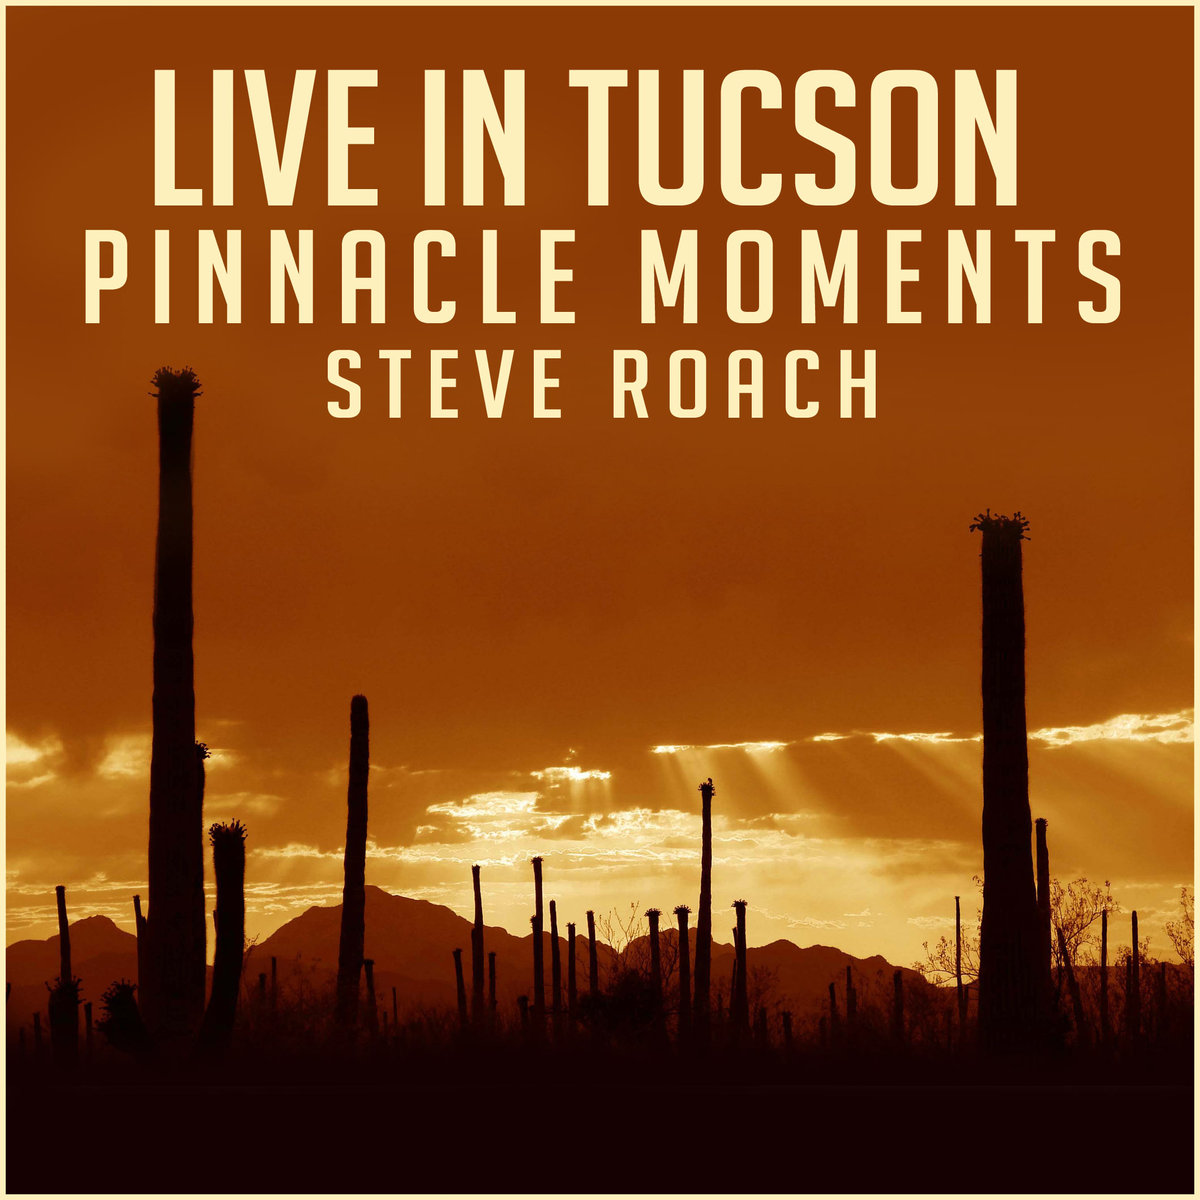 Steve Roach: Live in Tucson: Pinnacle Moments (CD, Timeroom Editions 37, 2016)